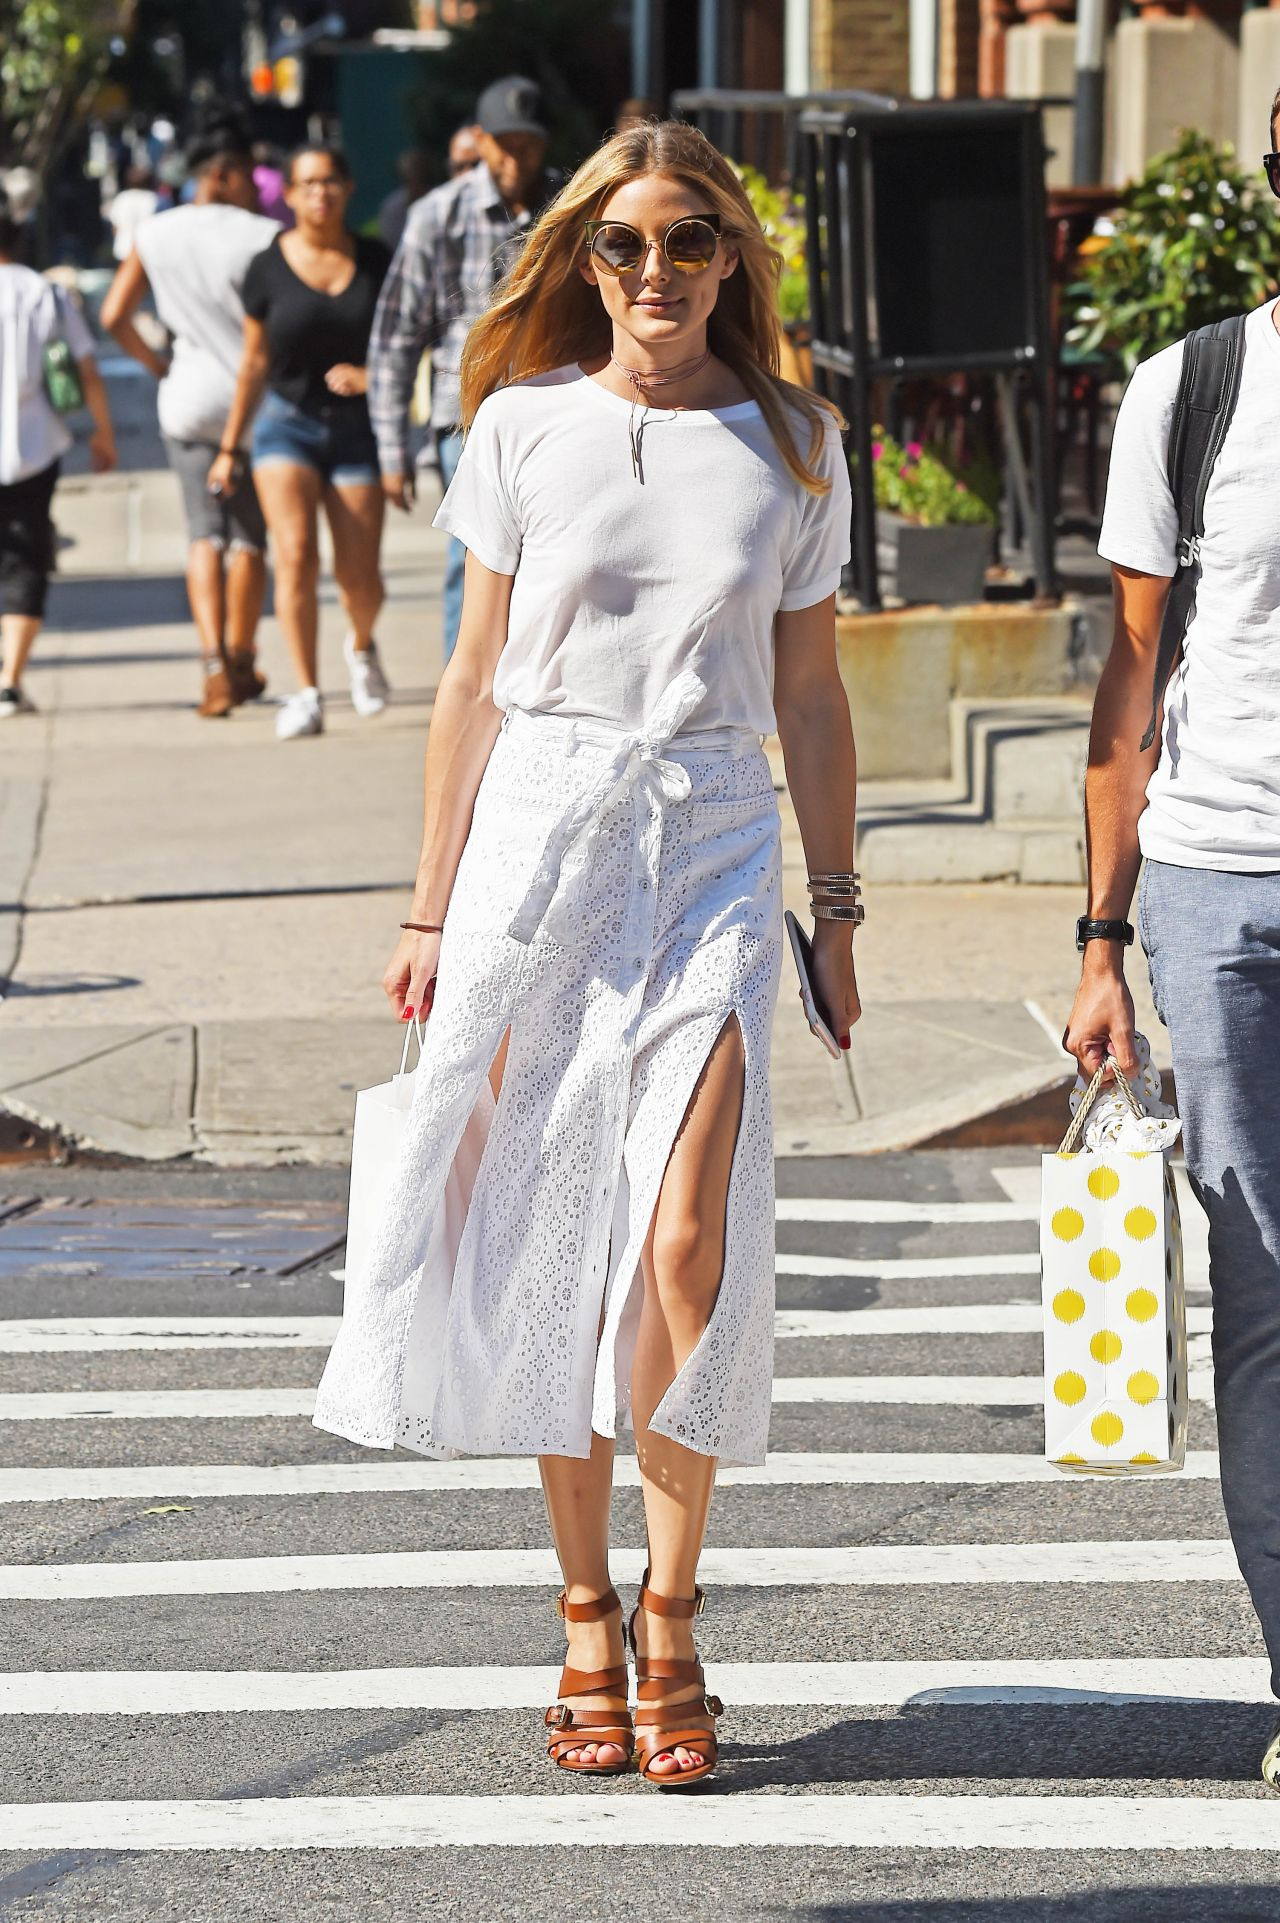 Olivia Palermo Summer Style New York City 07 21 2016